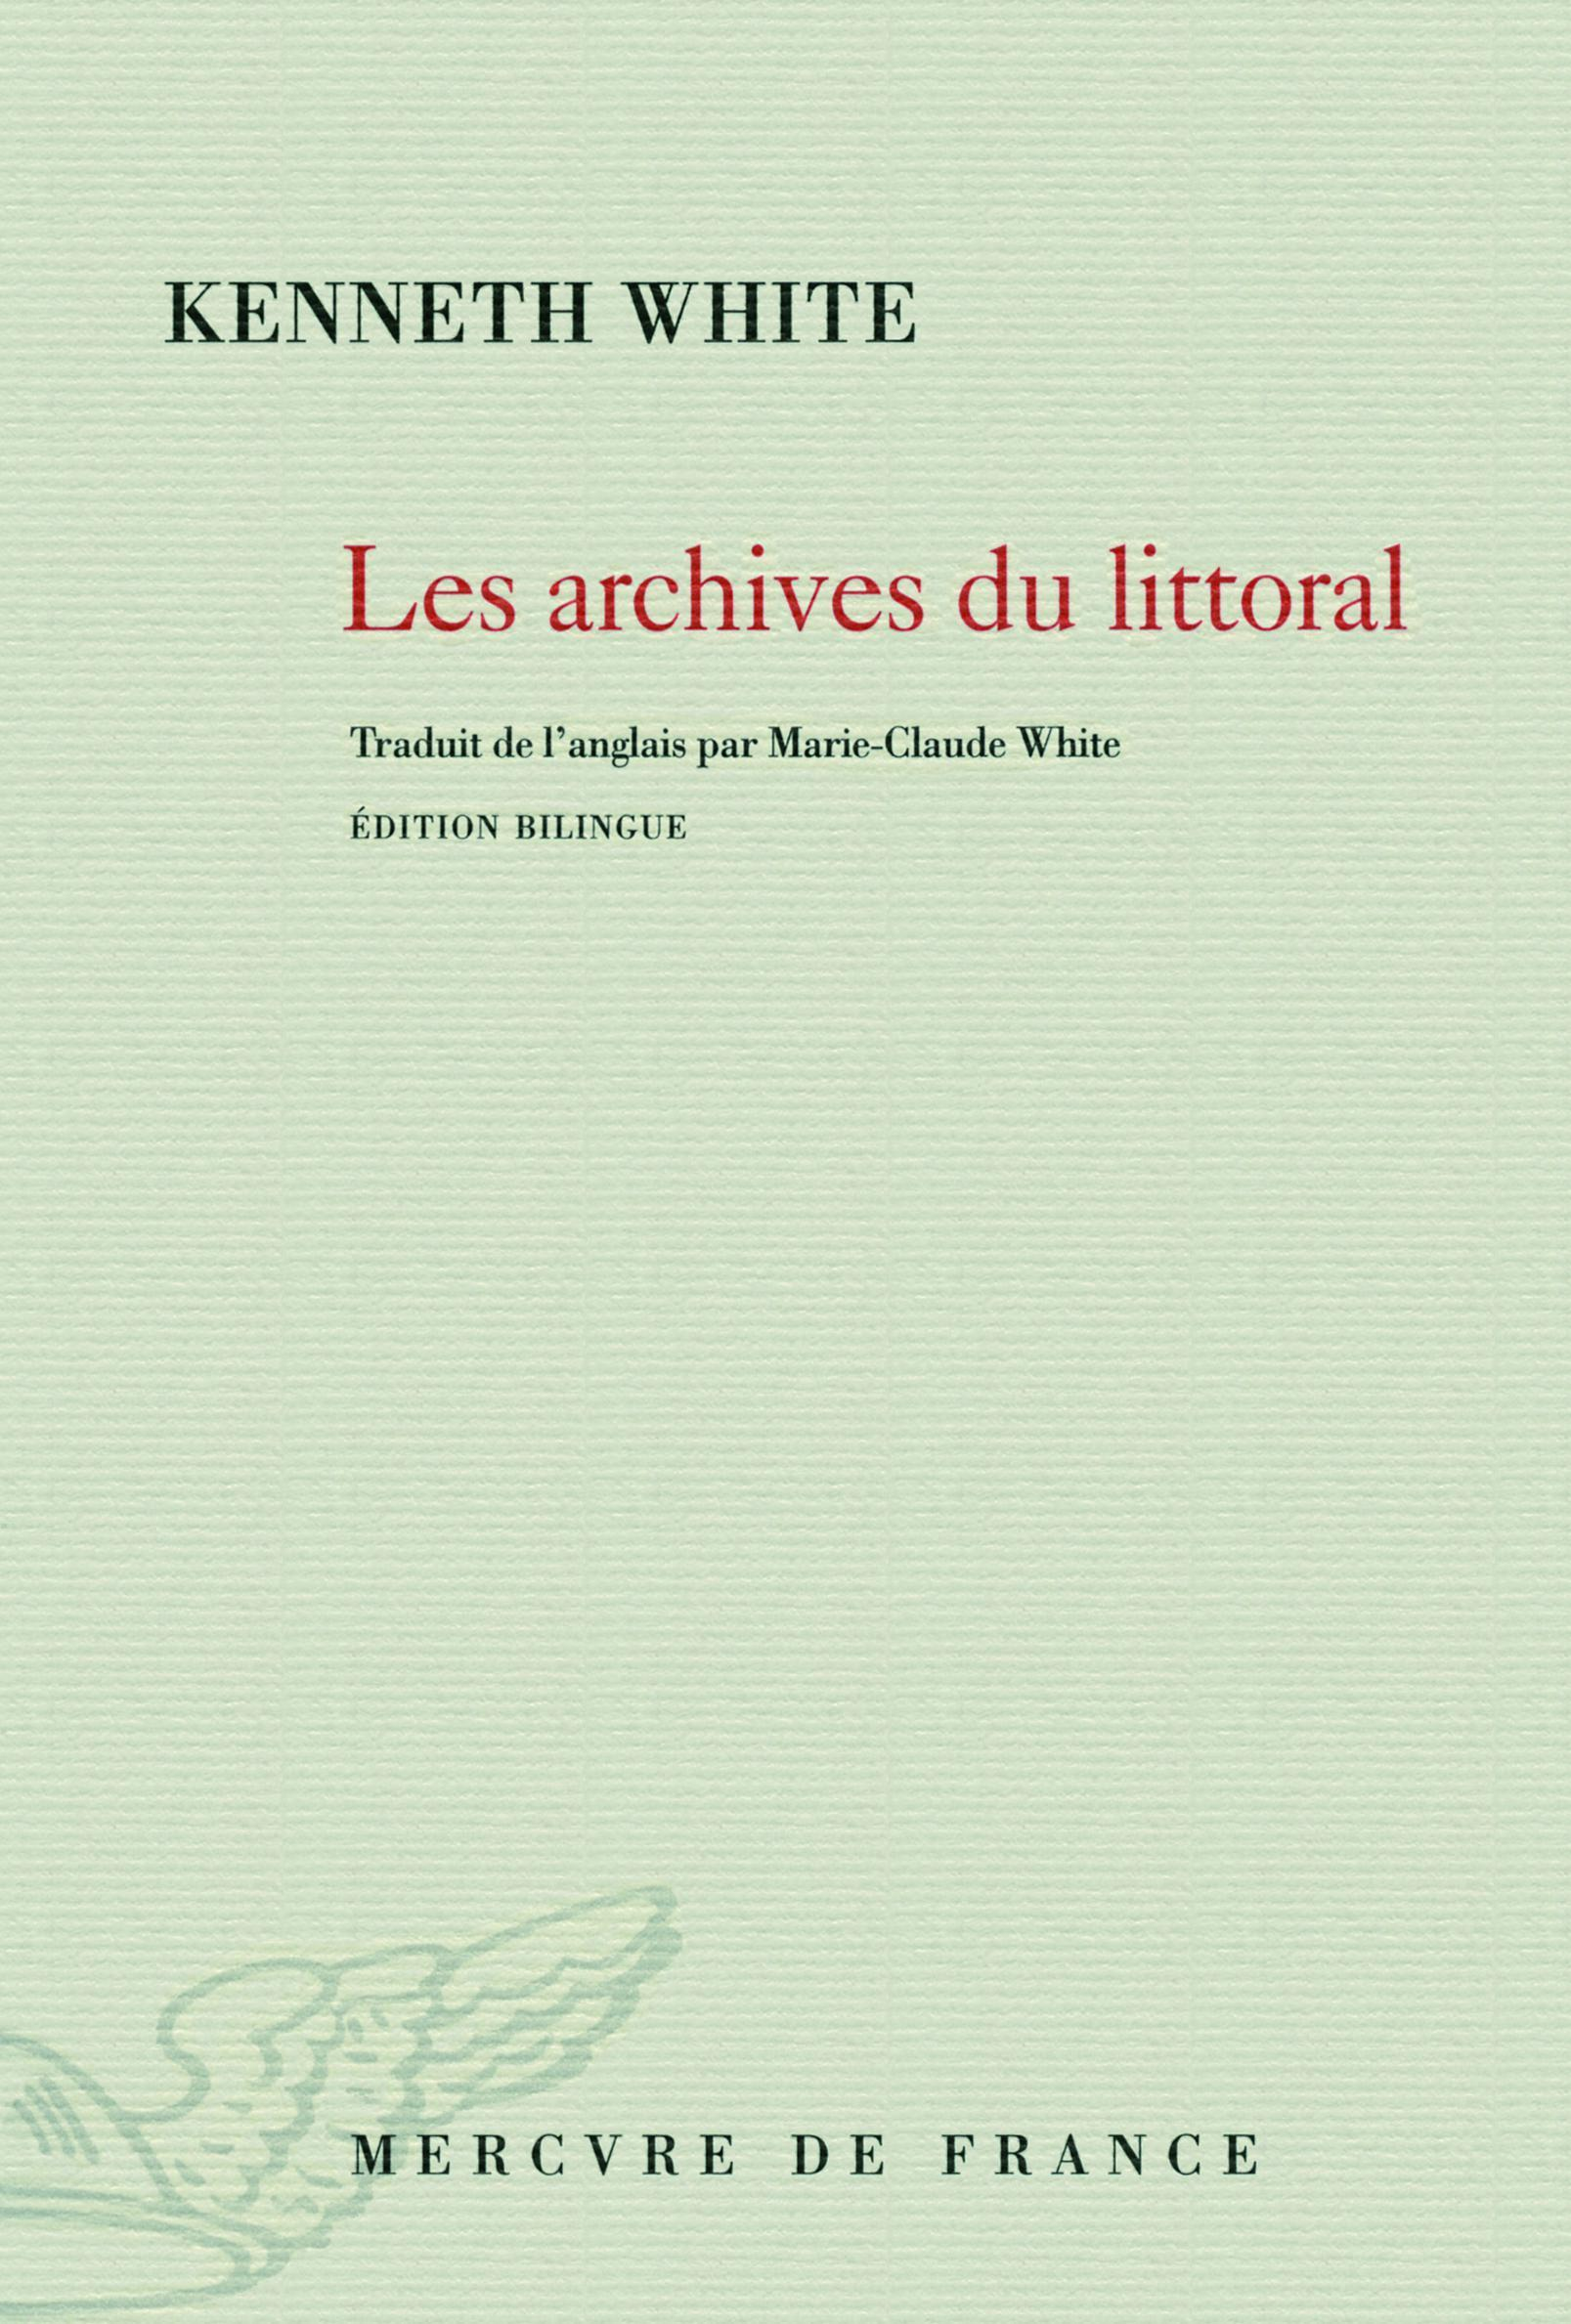 Les archives du littoral